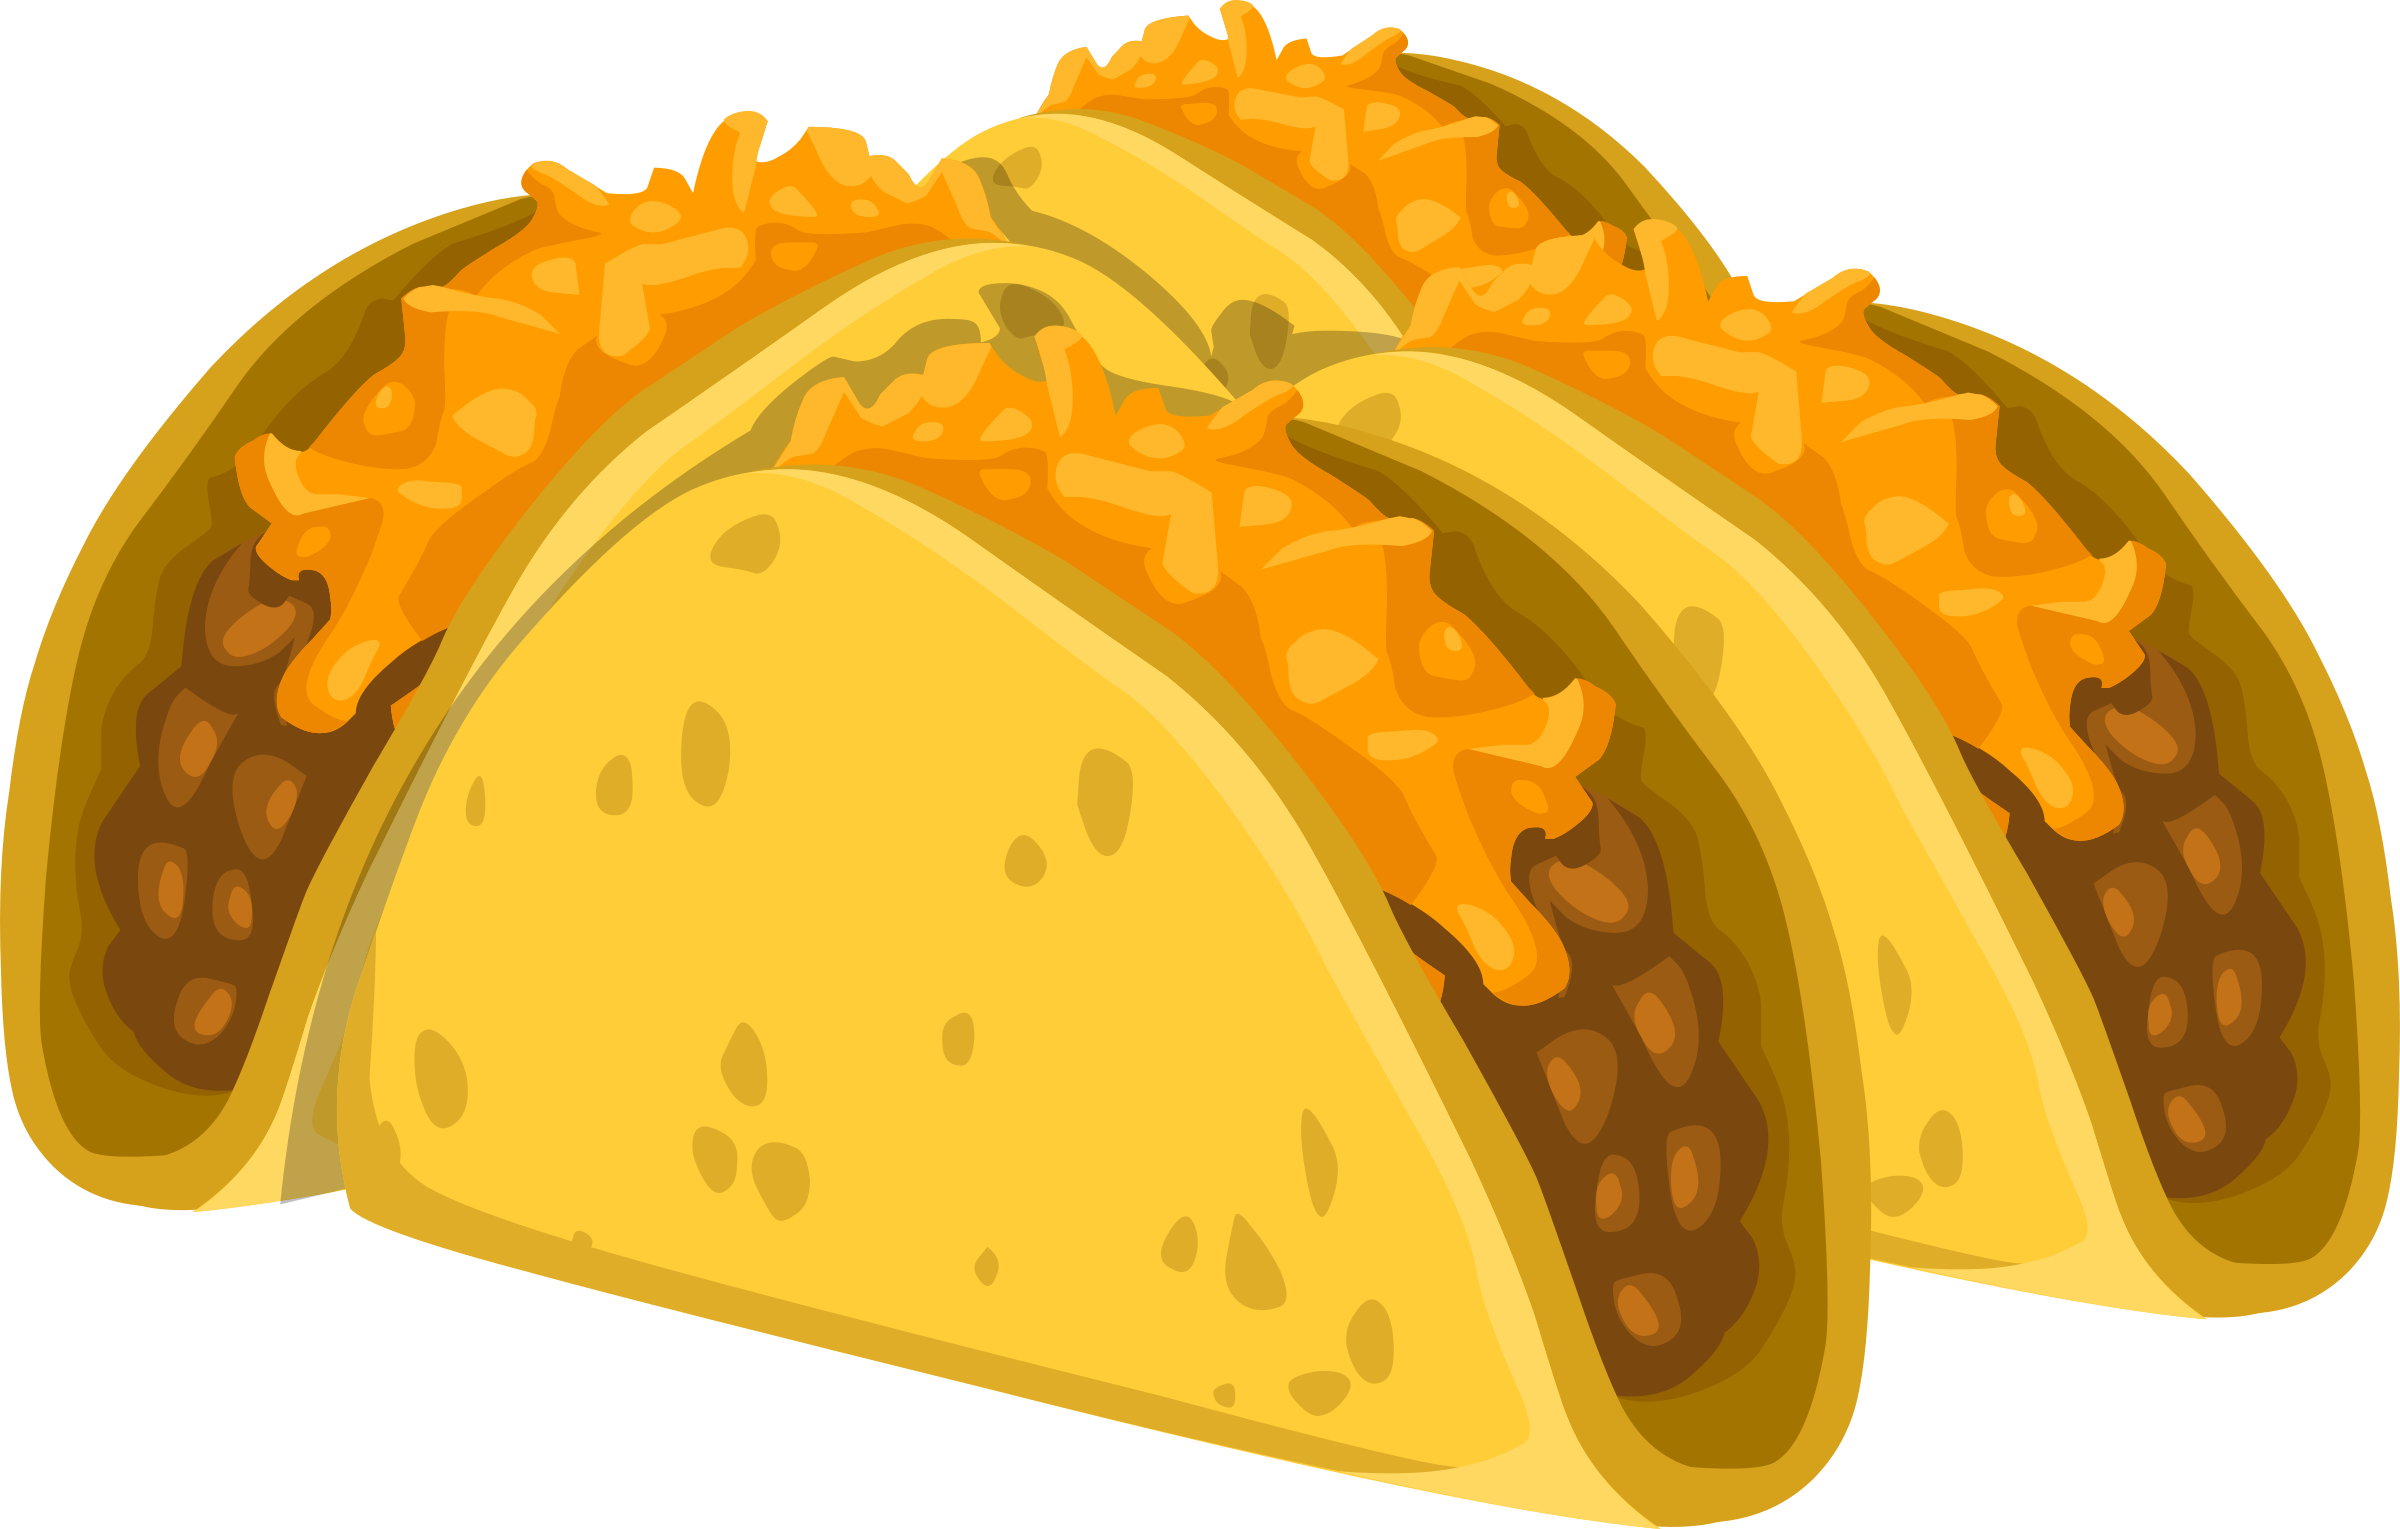 Tacos clipart vector. Food cold taco icons